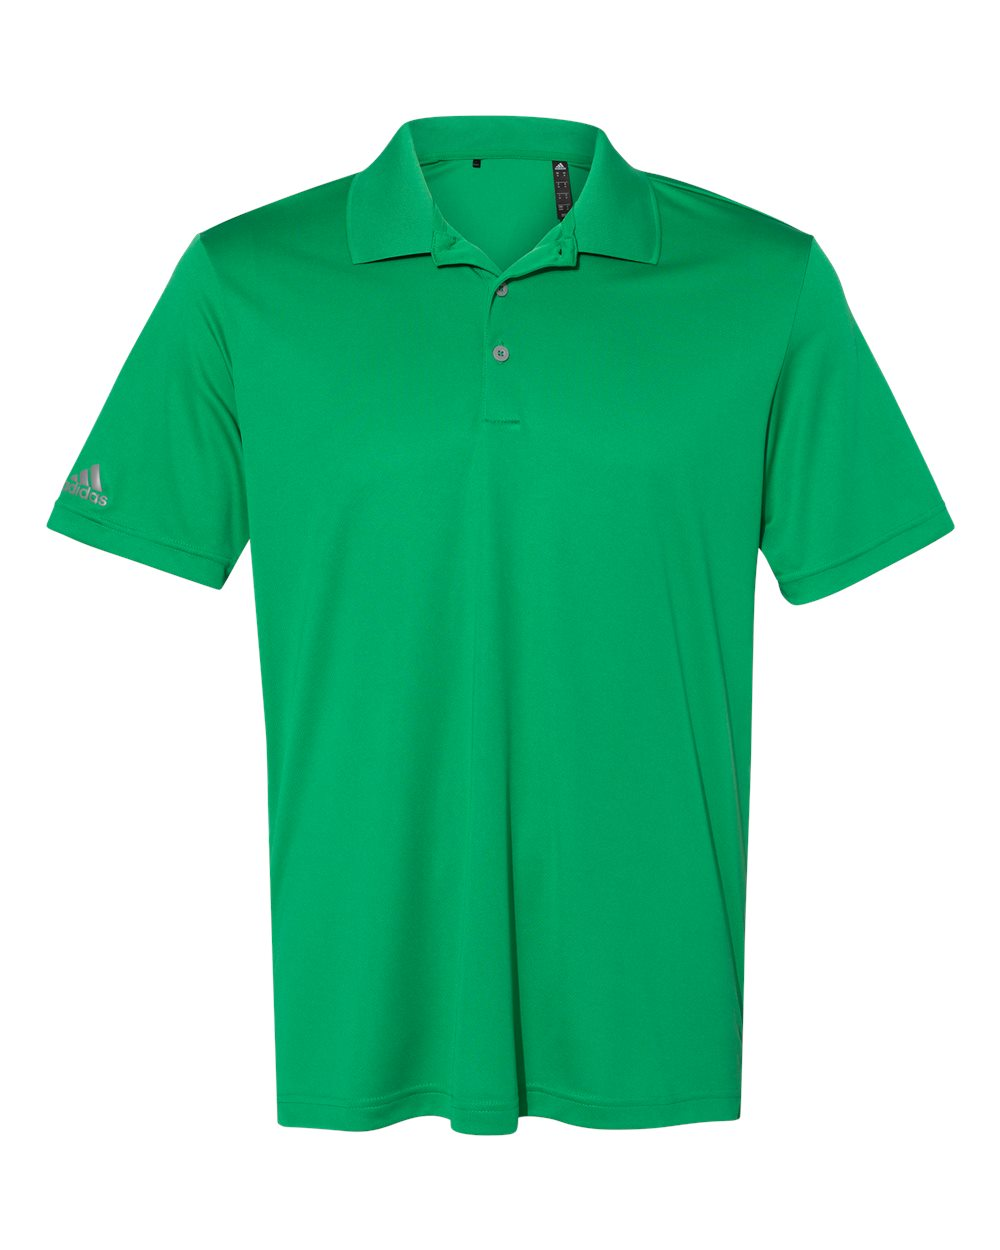 Adidas-Performance-Sport-Shirt-Polo-Button-A230-up-to-4XL miniature 22